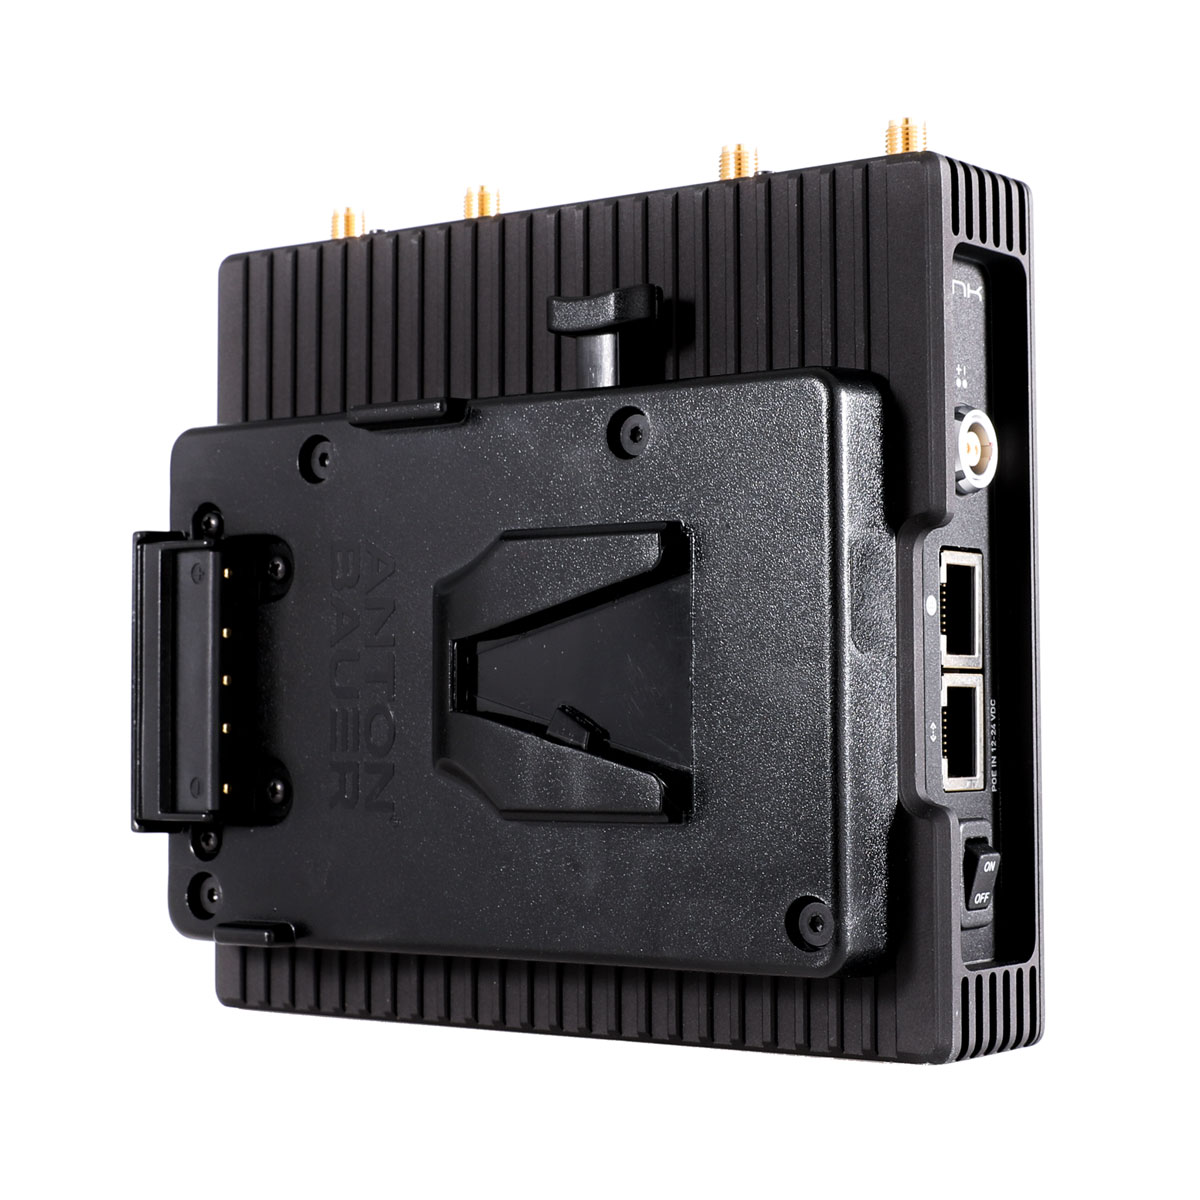 Link - Dual Band WiFi Router - No Mount